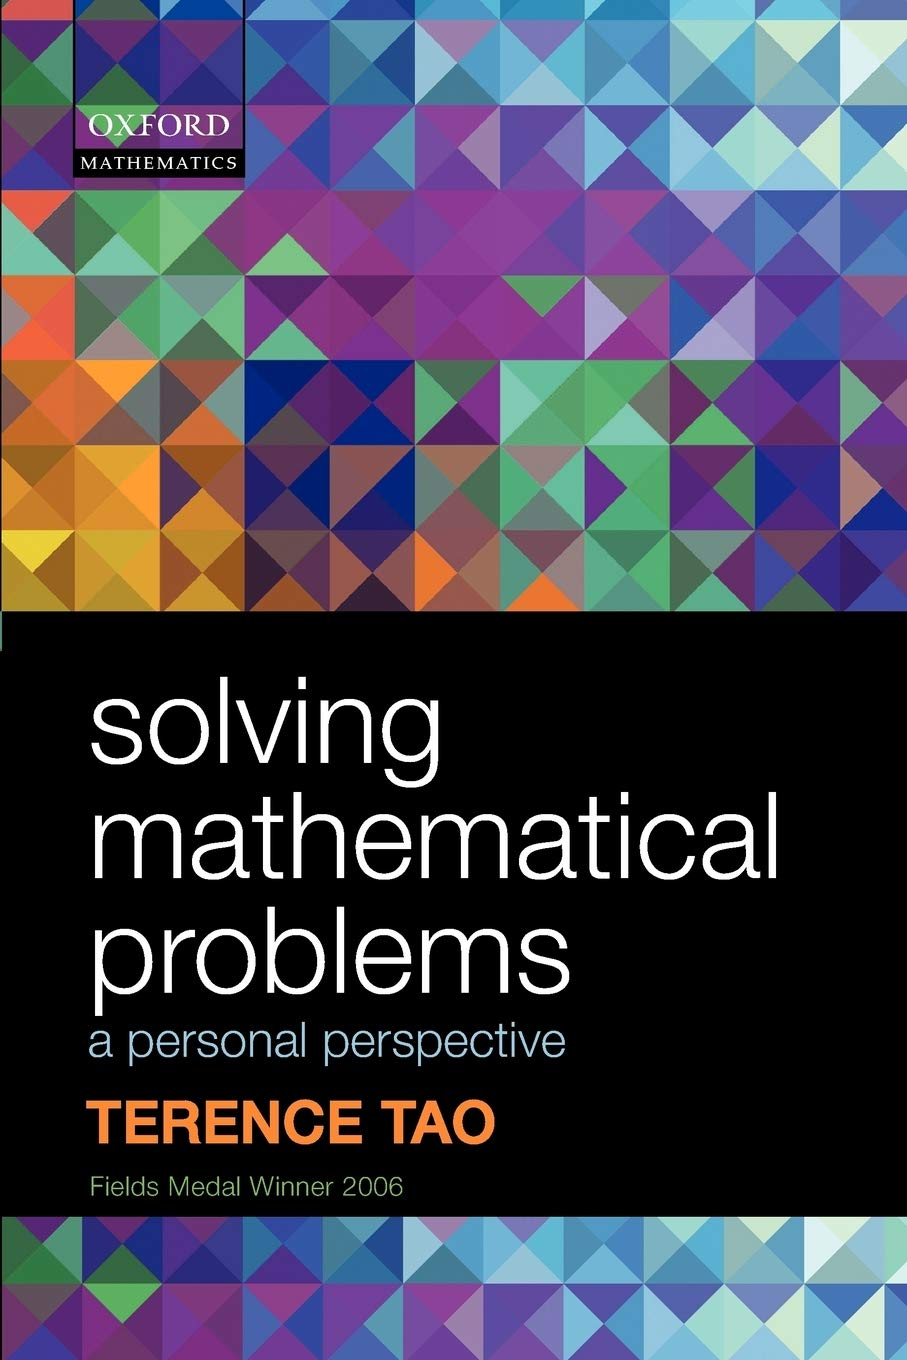 Image OfSolving Mathematical Problems: A Personal Perspective